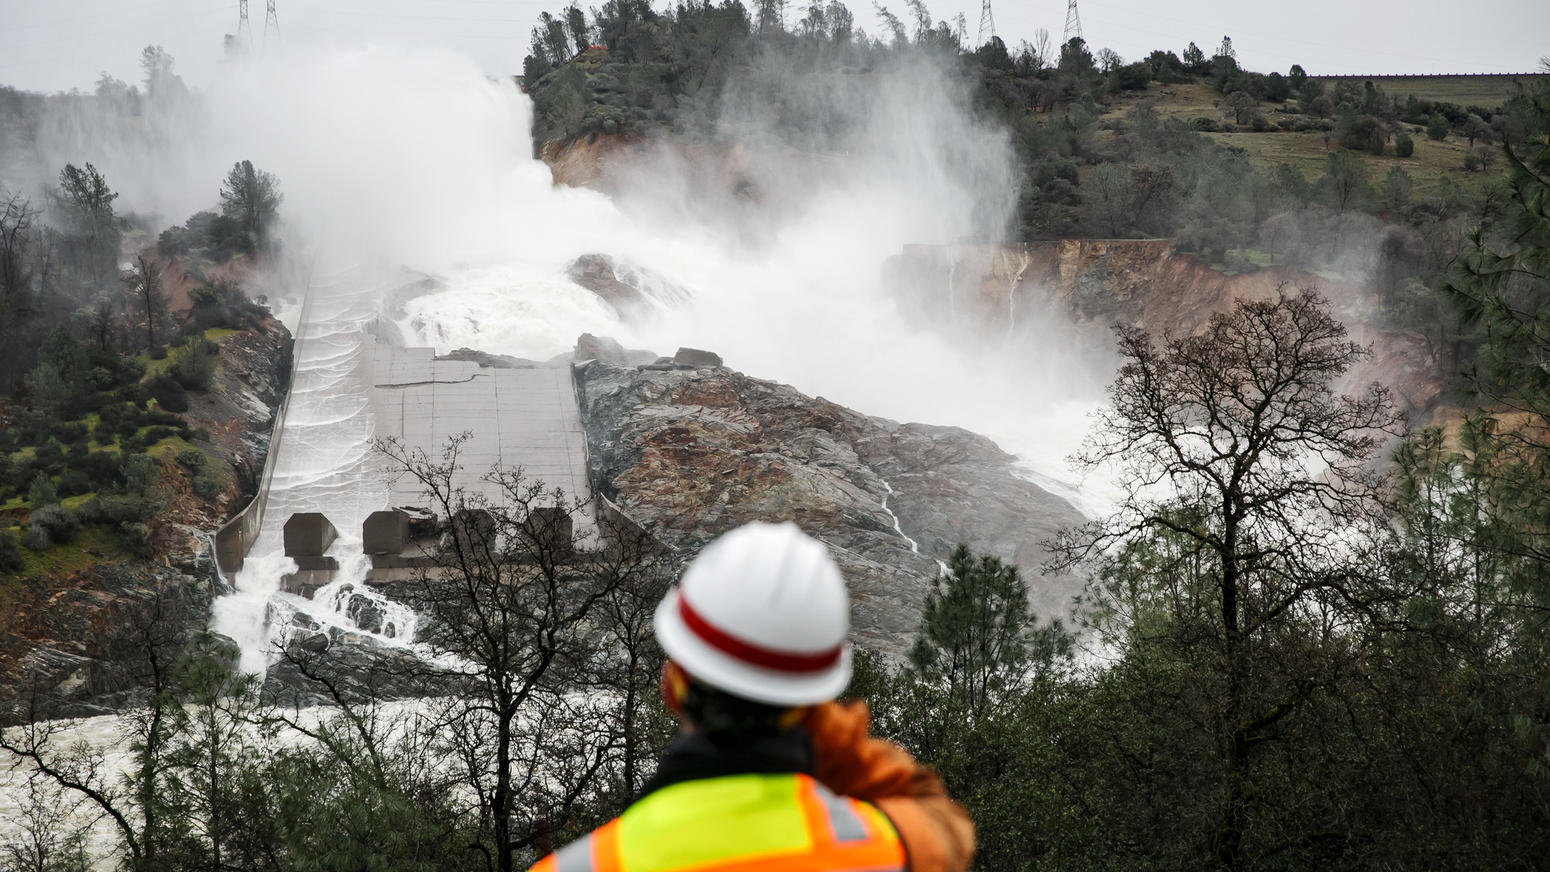 la-me-lake-oroville-spillway-pictures-103.jpg